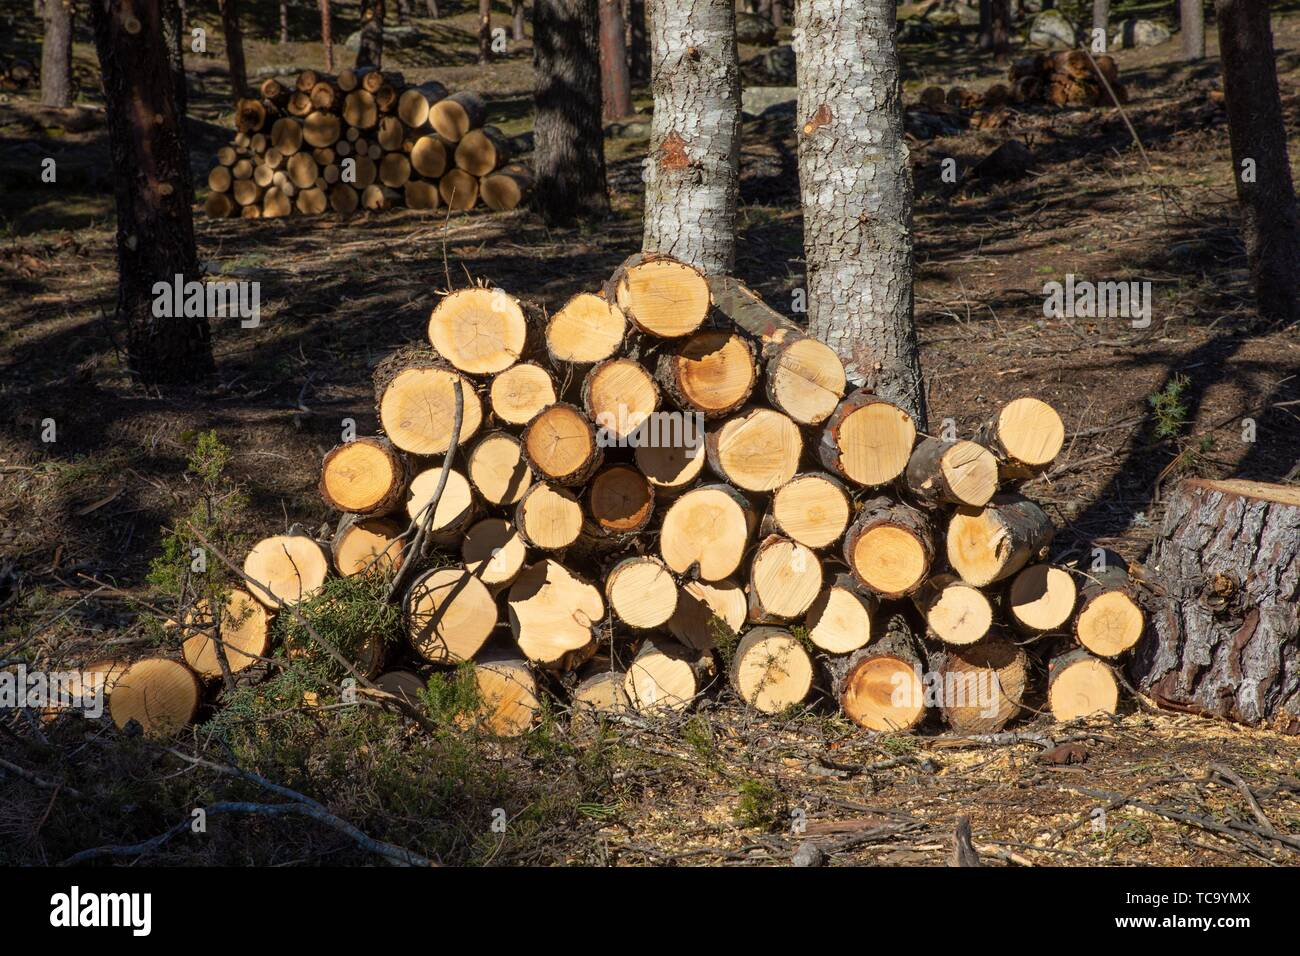 piles of wooden logs, stacked in a forest next to trunk of trees. Stock Photo